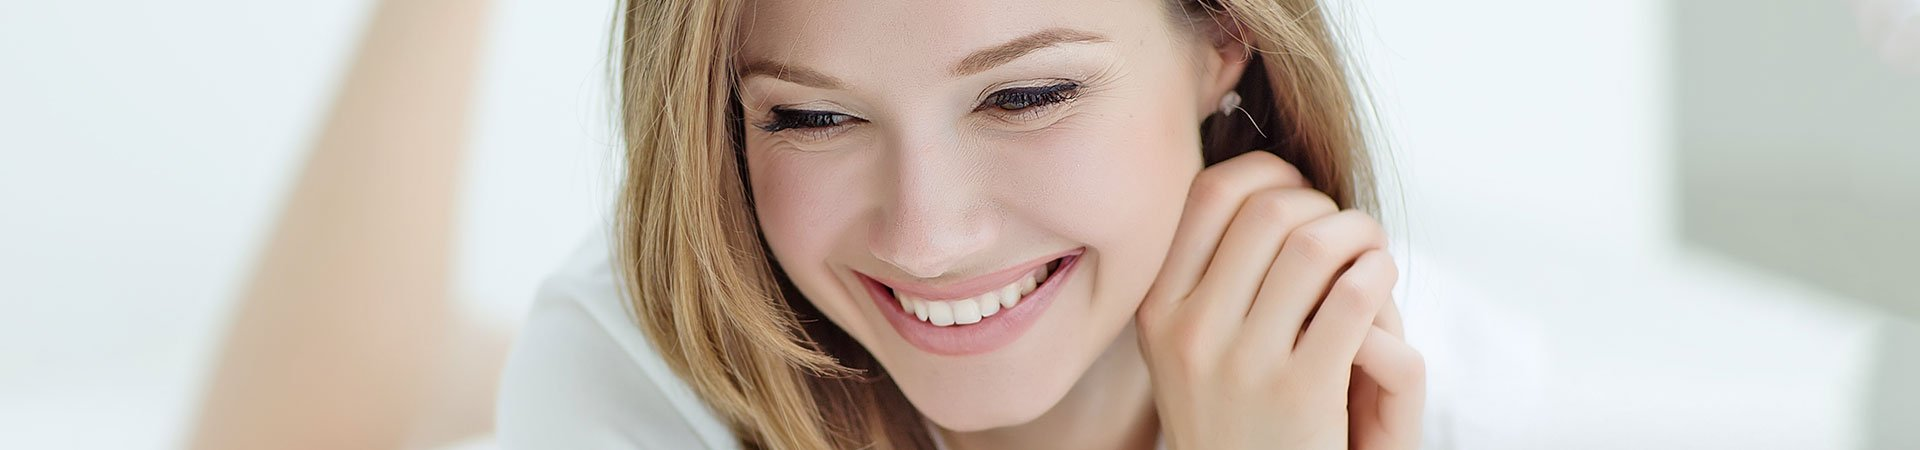 a girl with smiling face